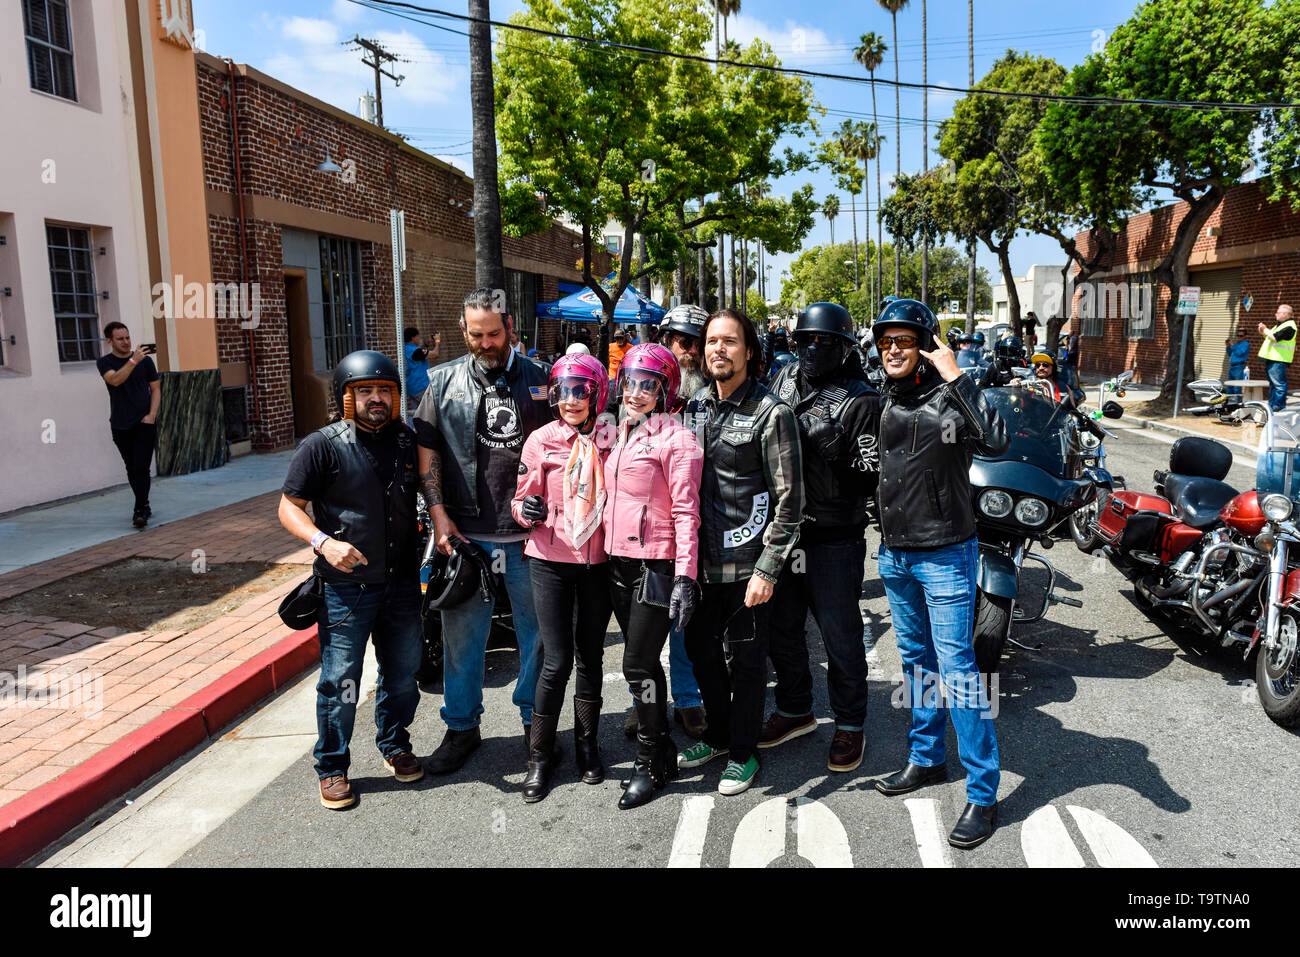 May 5, 2019, Glendale, California, Wendy Dio and friends at the 5th annual Ride for Ronnie charity motorcycle ride & concert Stock Photo